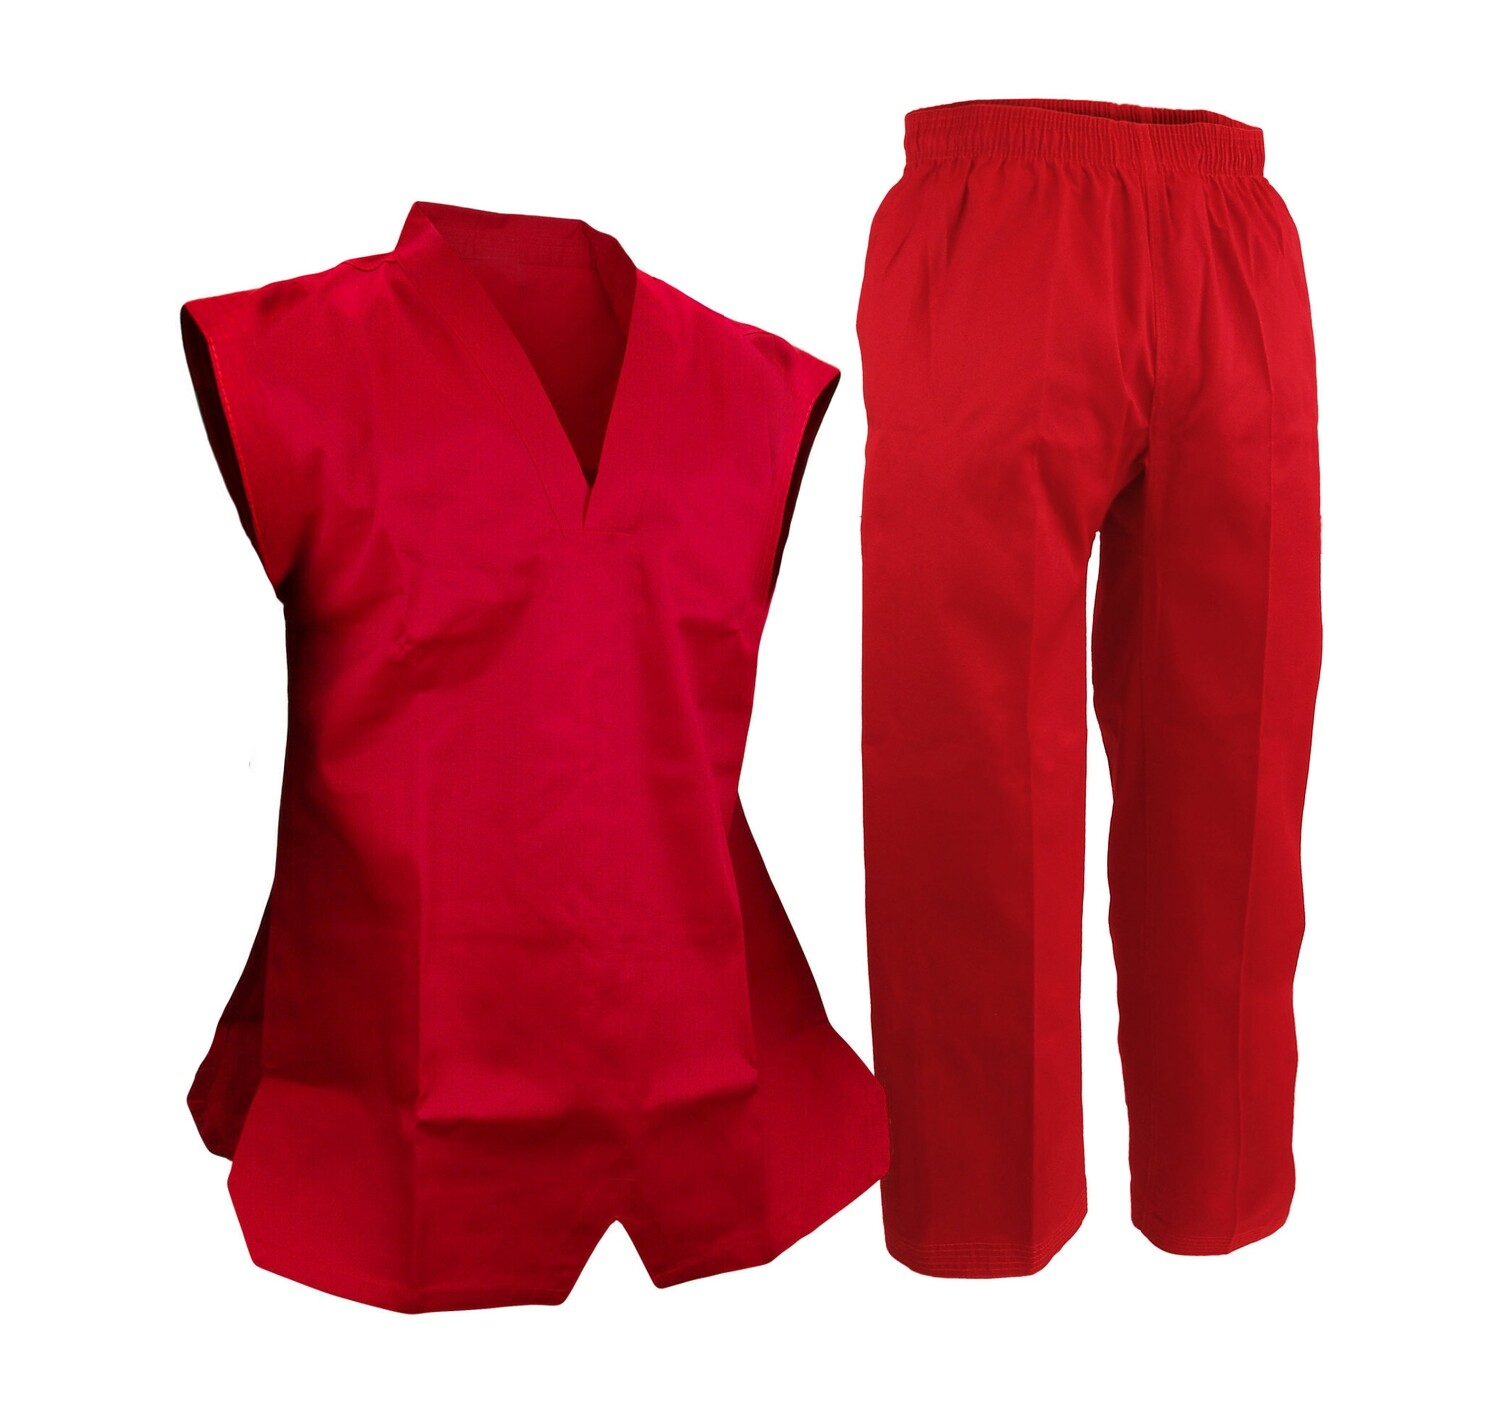 Taekwondo Uniform, Sleeveless, Red